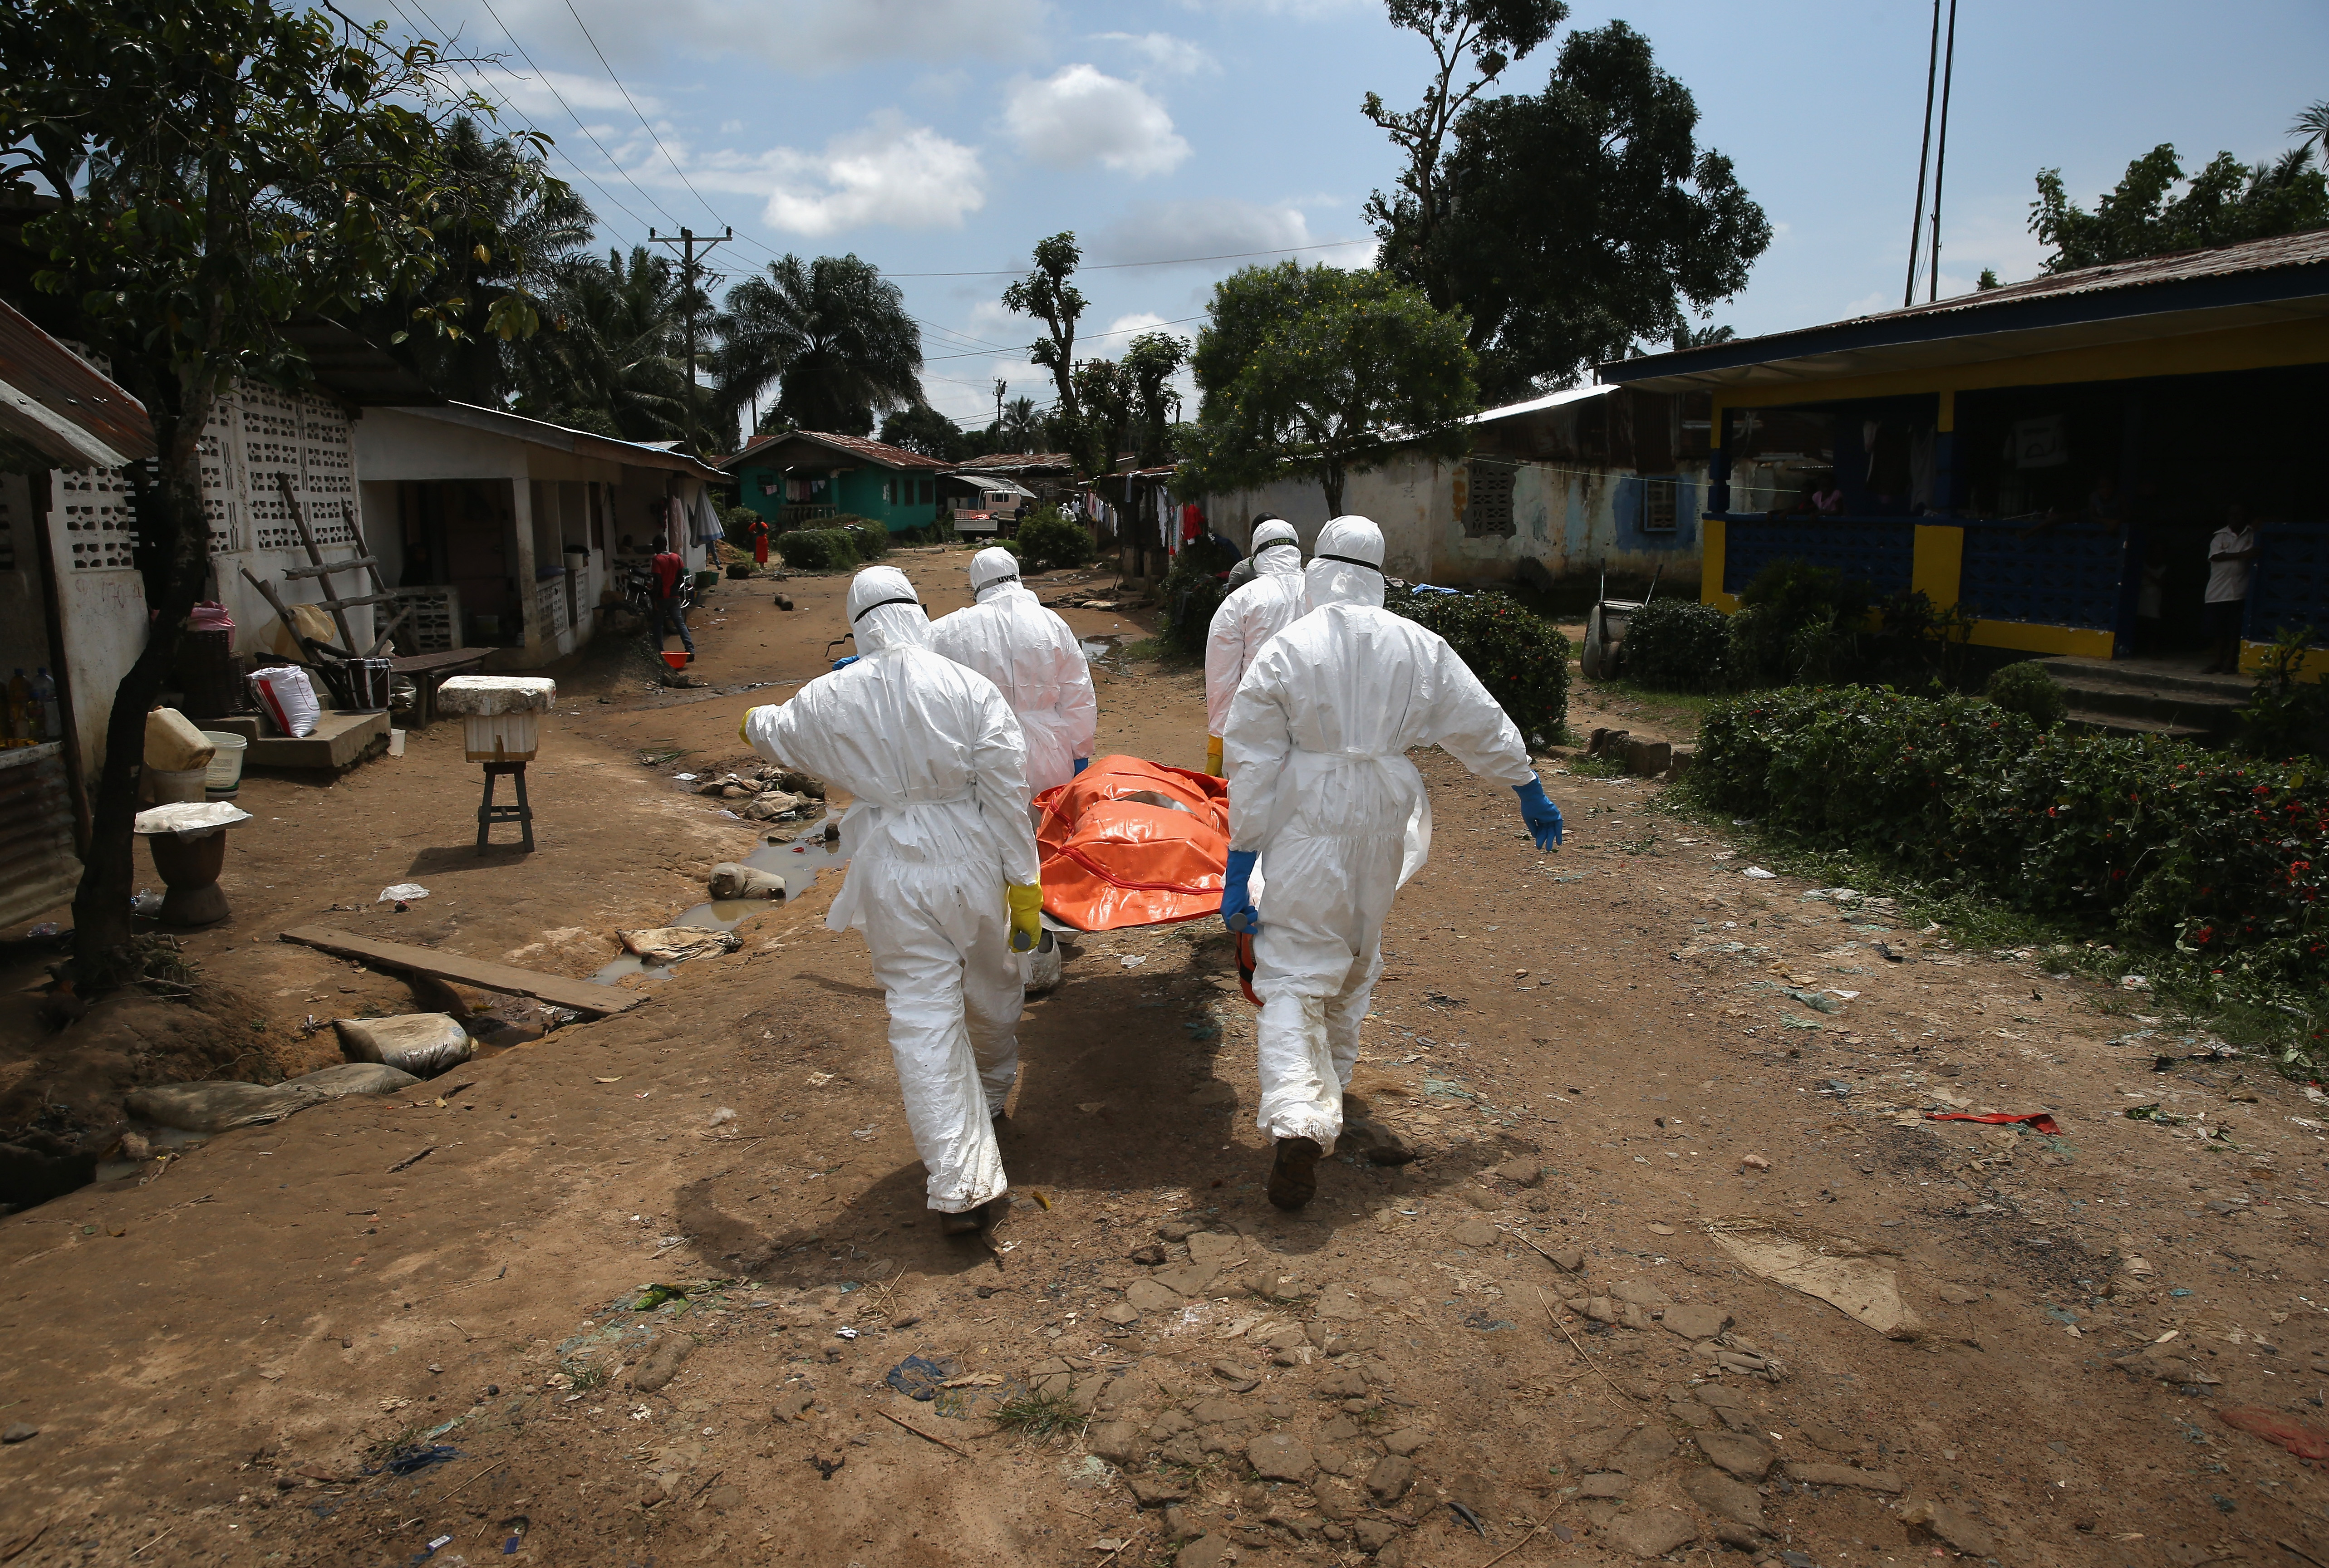 An Ebola burial team carries the body of a woman through the New Kru Town suburb on Oct. 10, 2014 of Monrovia, Liberia.